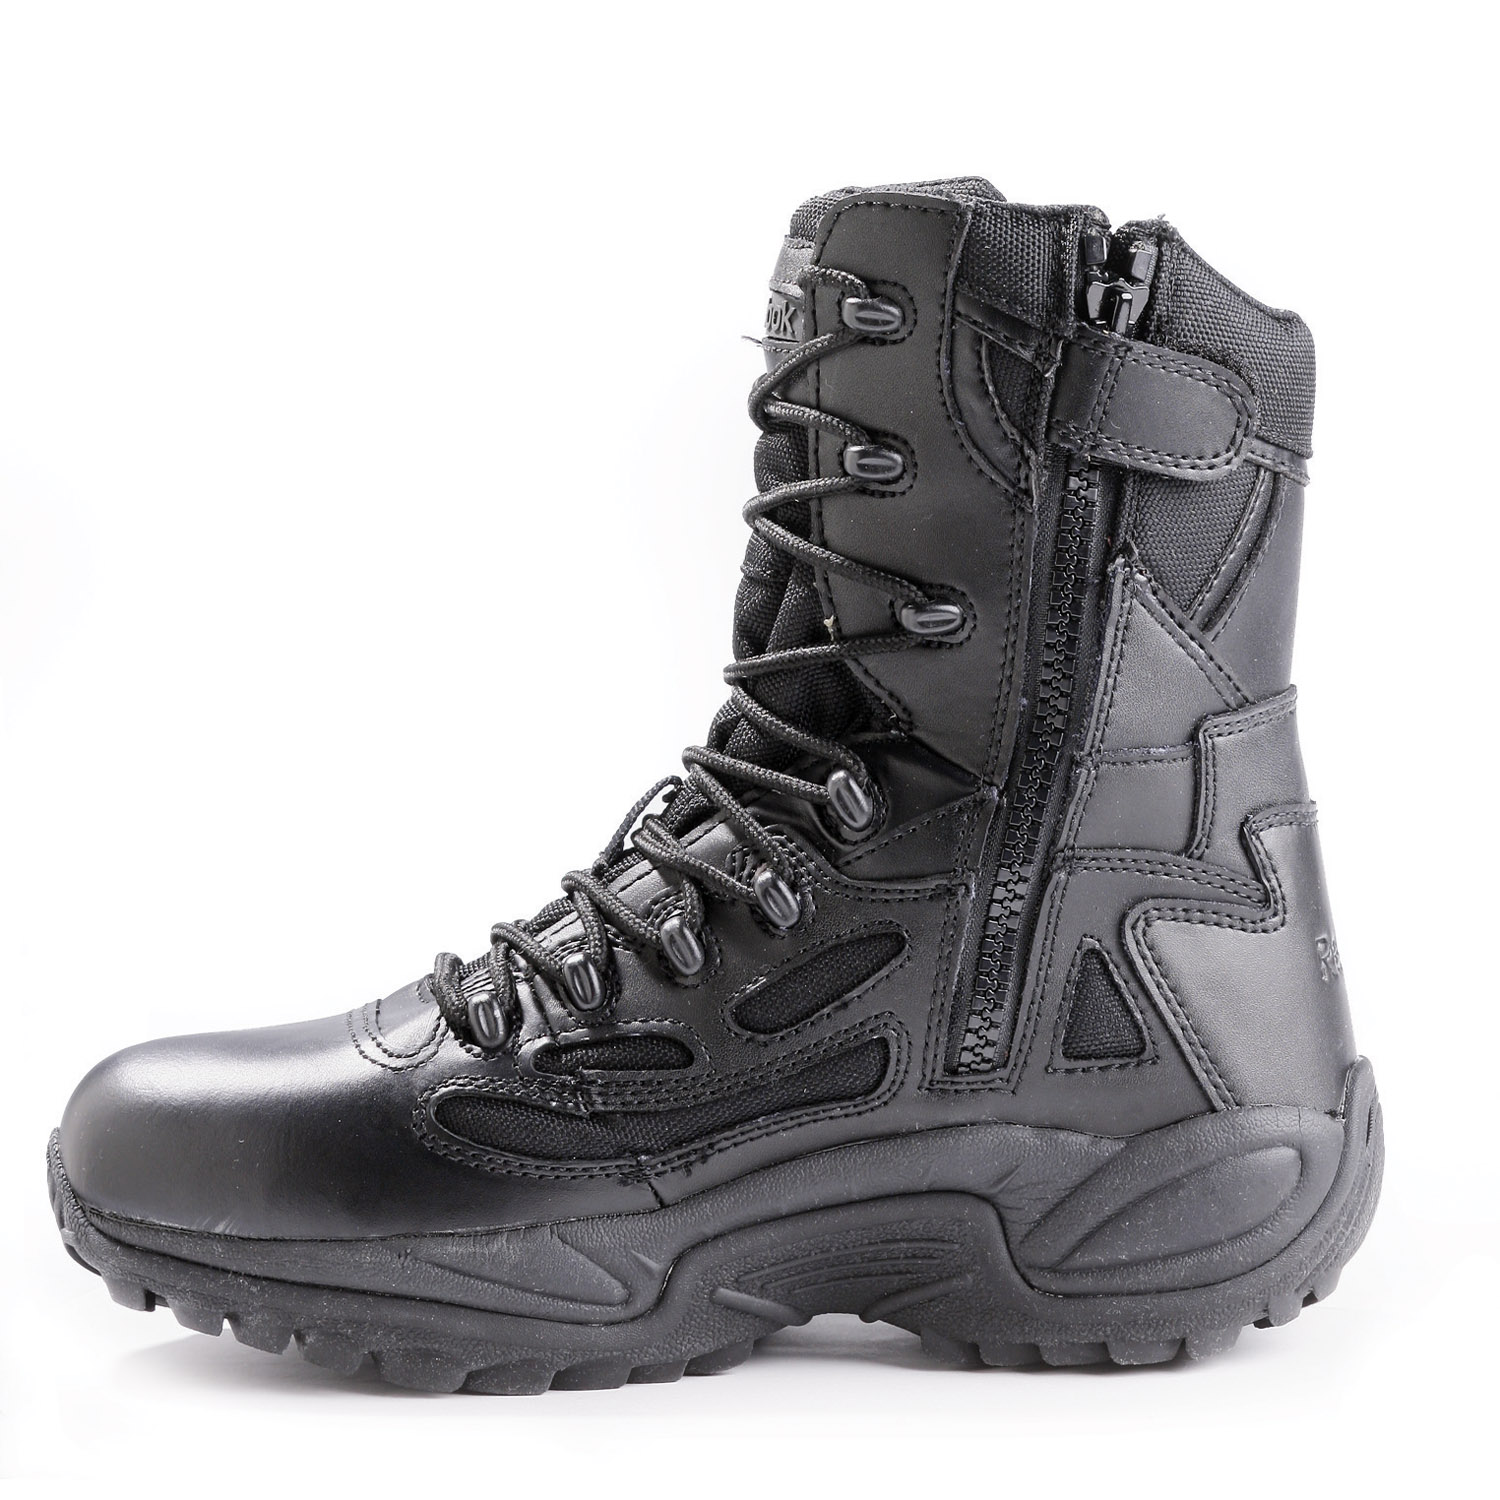 Reebok Women S 8 Quot Rapid Response Waterproof Side Zip Boots